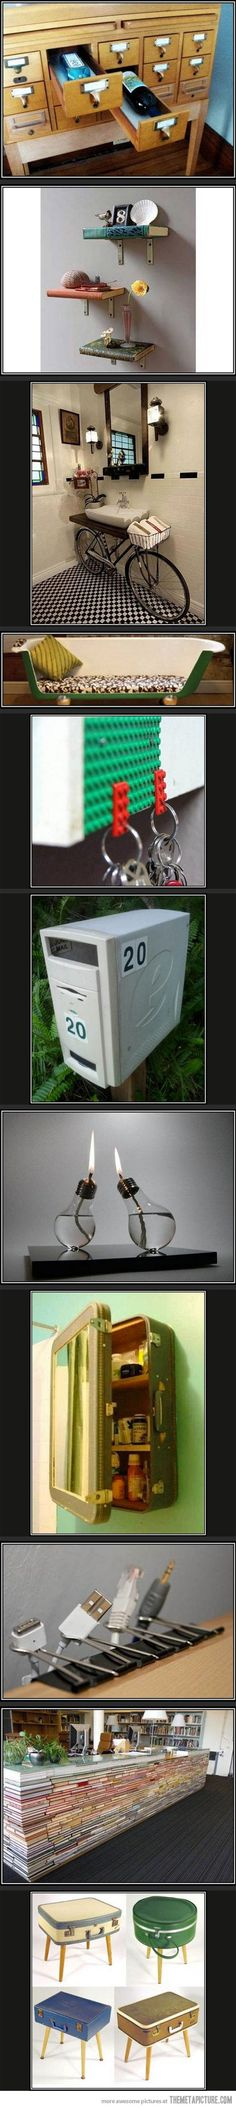 Creative ways to repurpose old stuff…